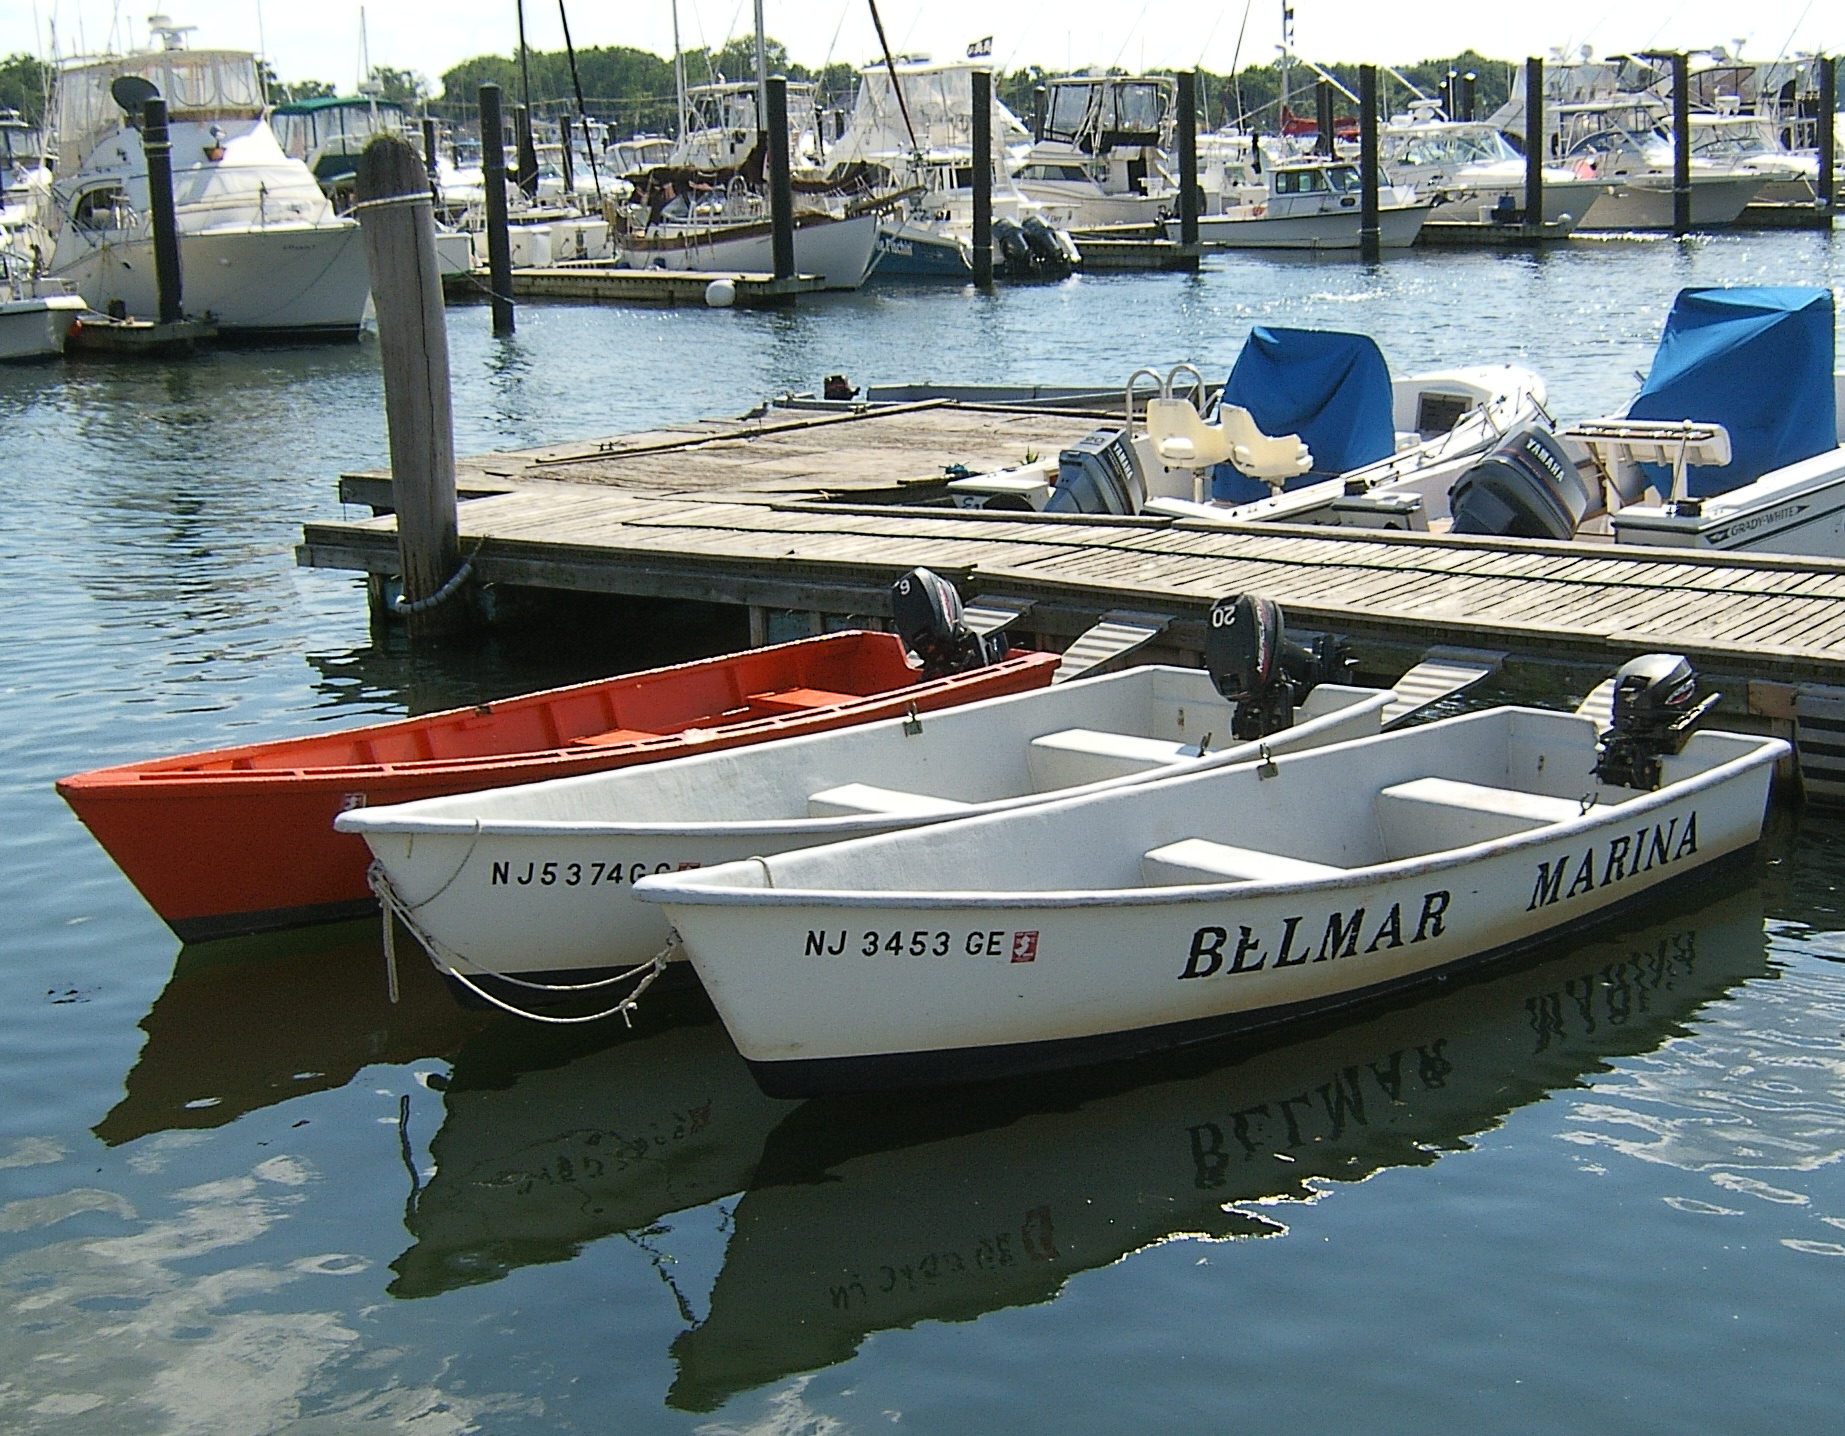 Belmar marina fishing boat rentals love 39 s photo album for Belmar nj fishing